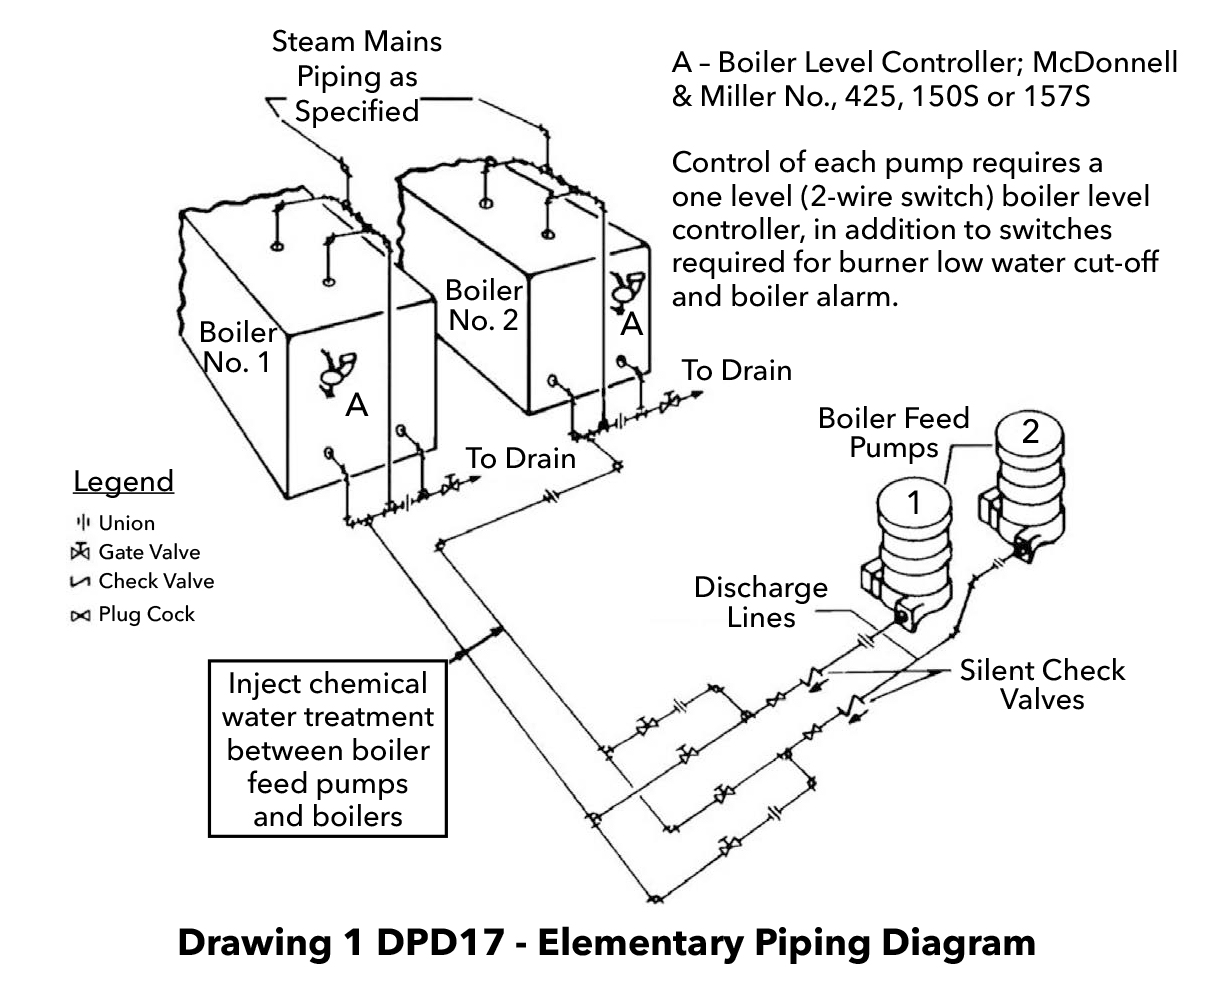 Pump Piping Diagram Electrical Schematics Typical Boiler Feed Unit Discharge Arrangements Xylem Telephone Schematic